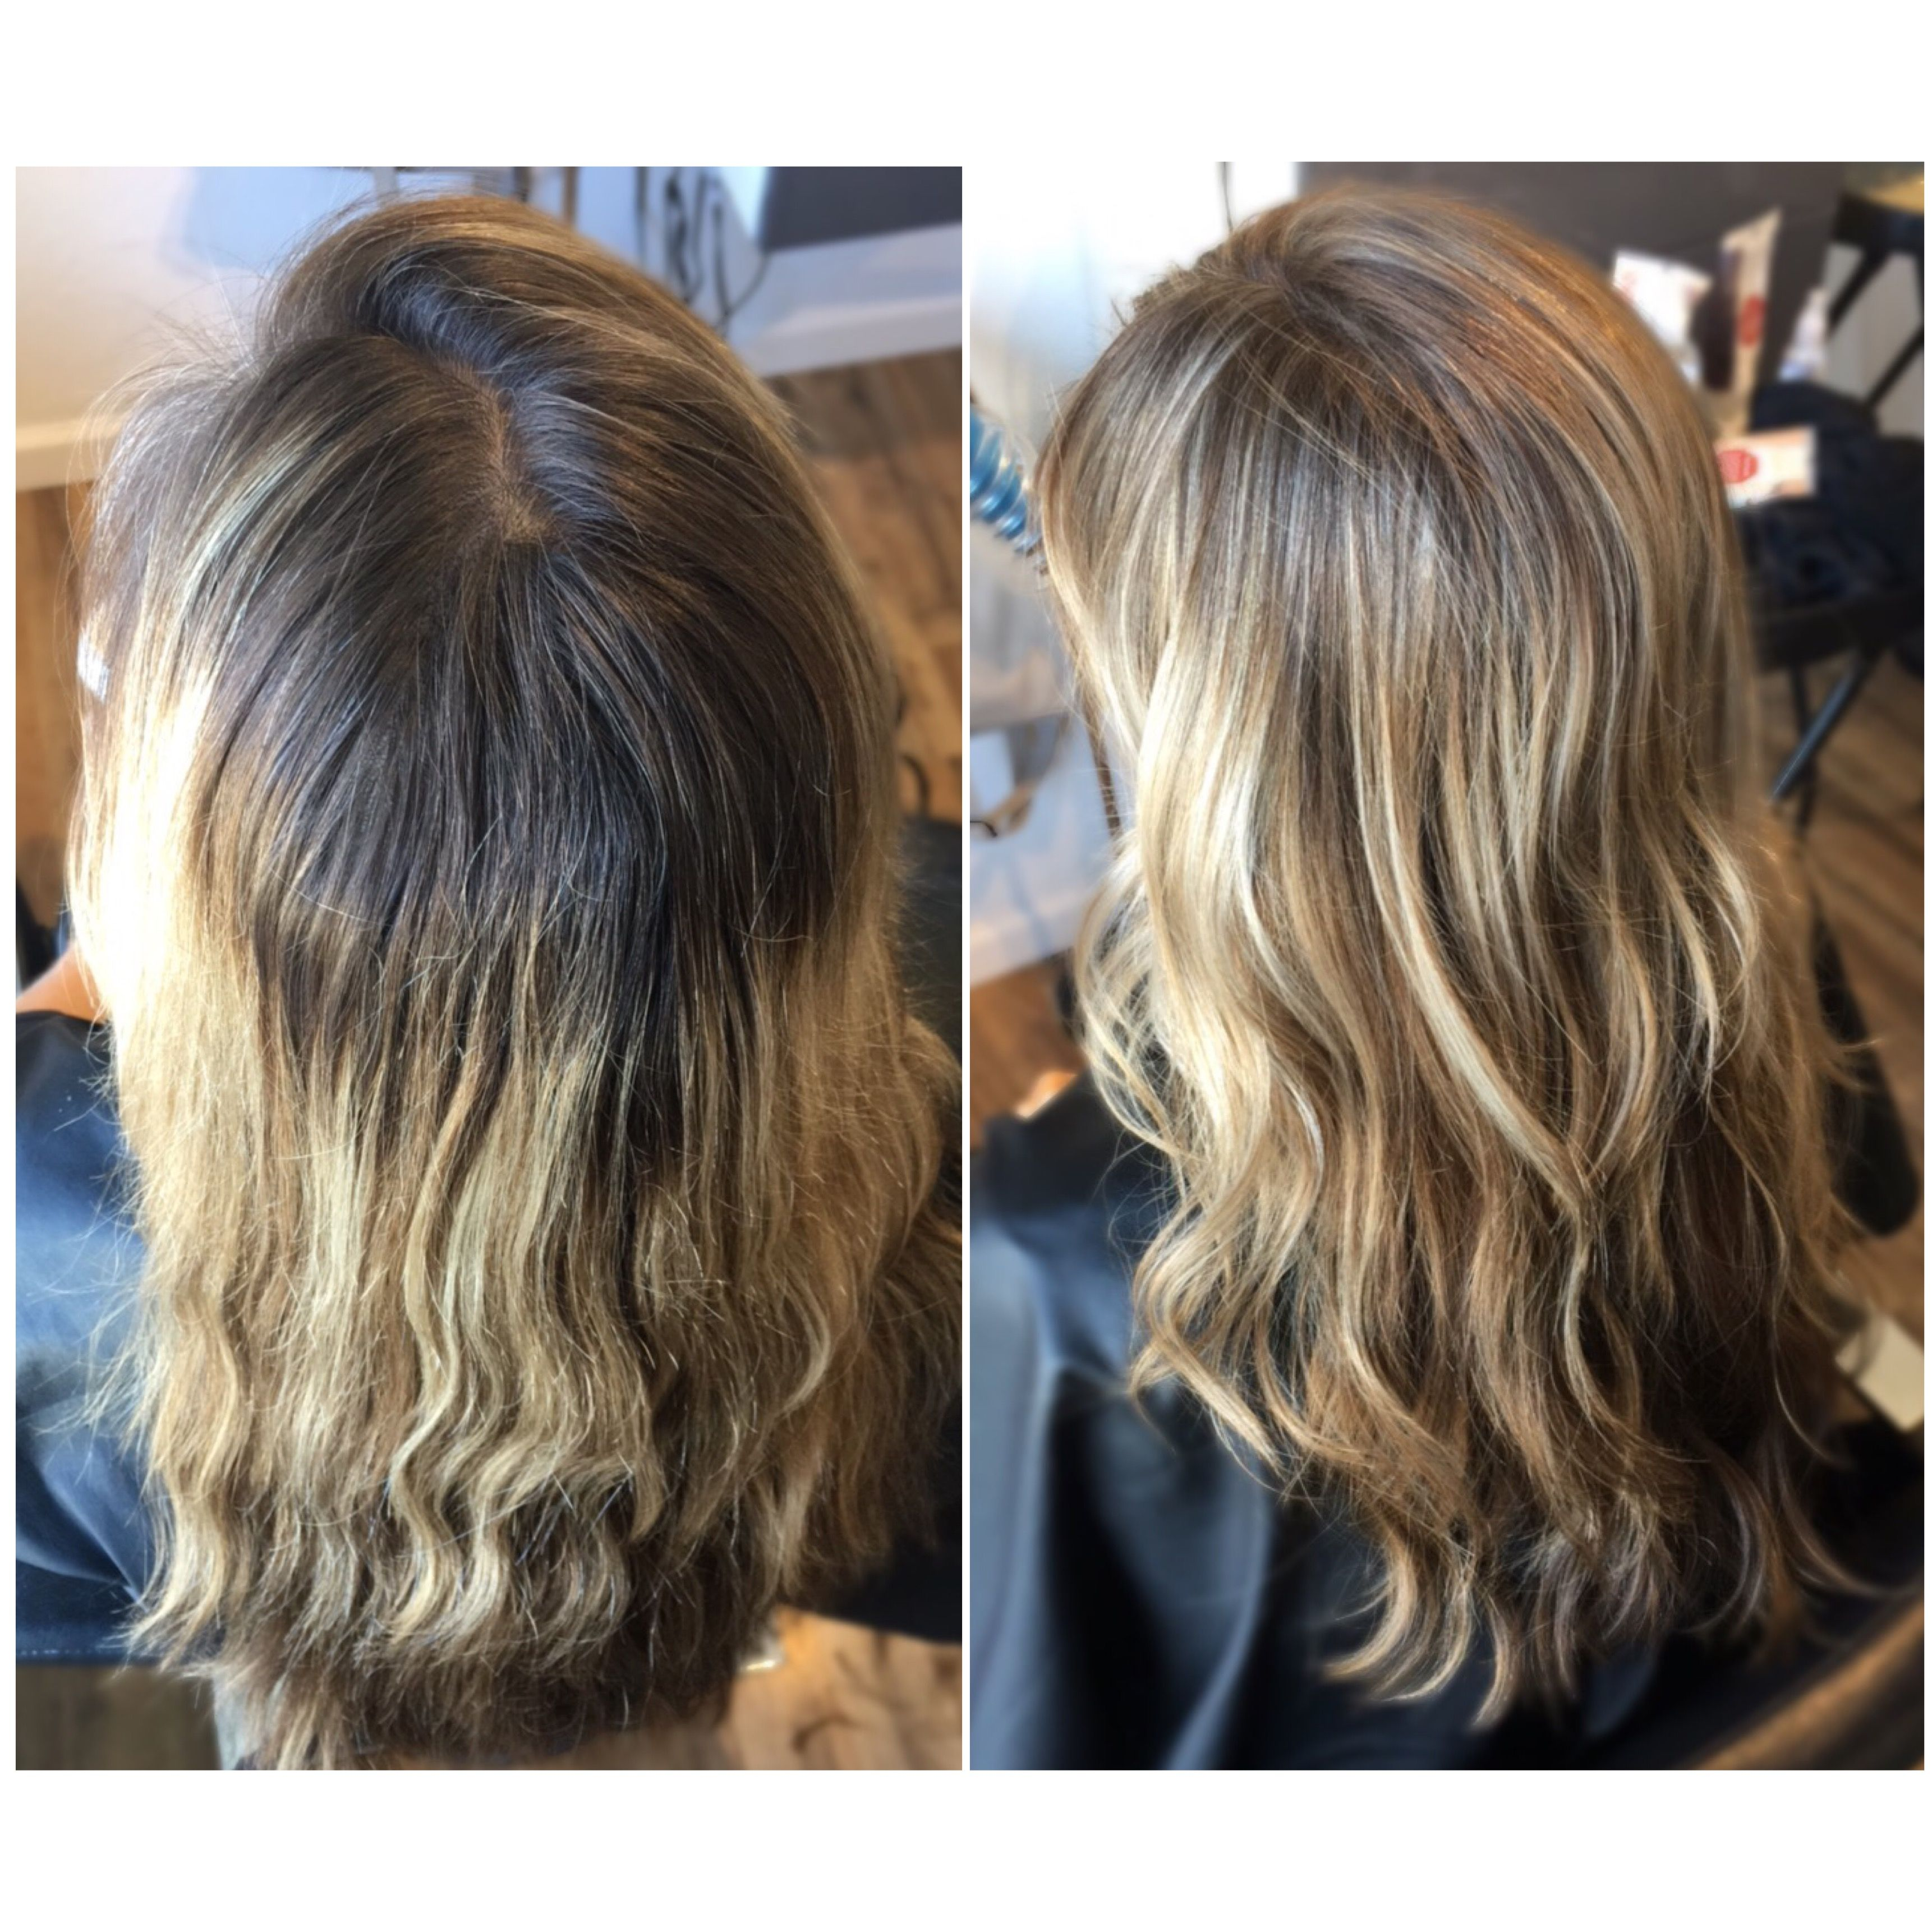 Before and after Babylights and highlights